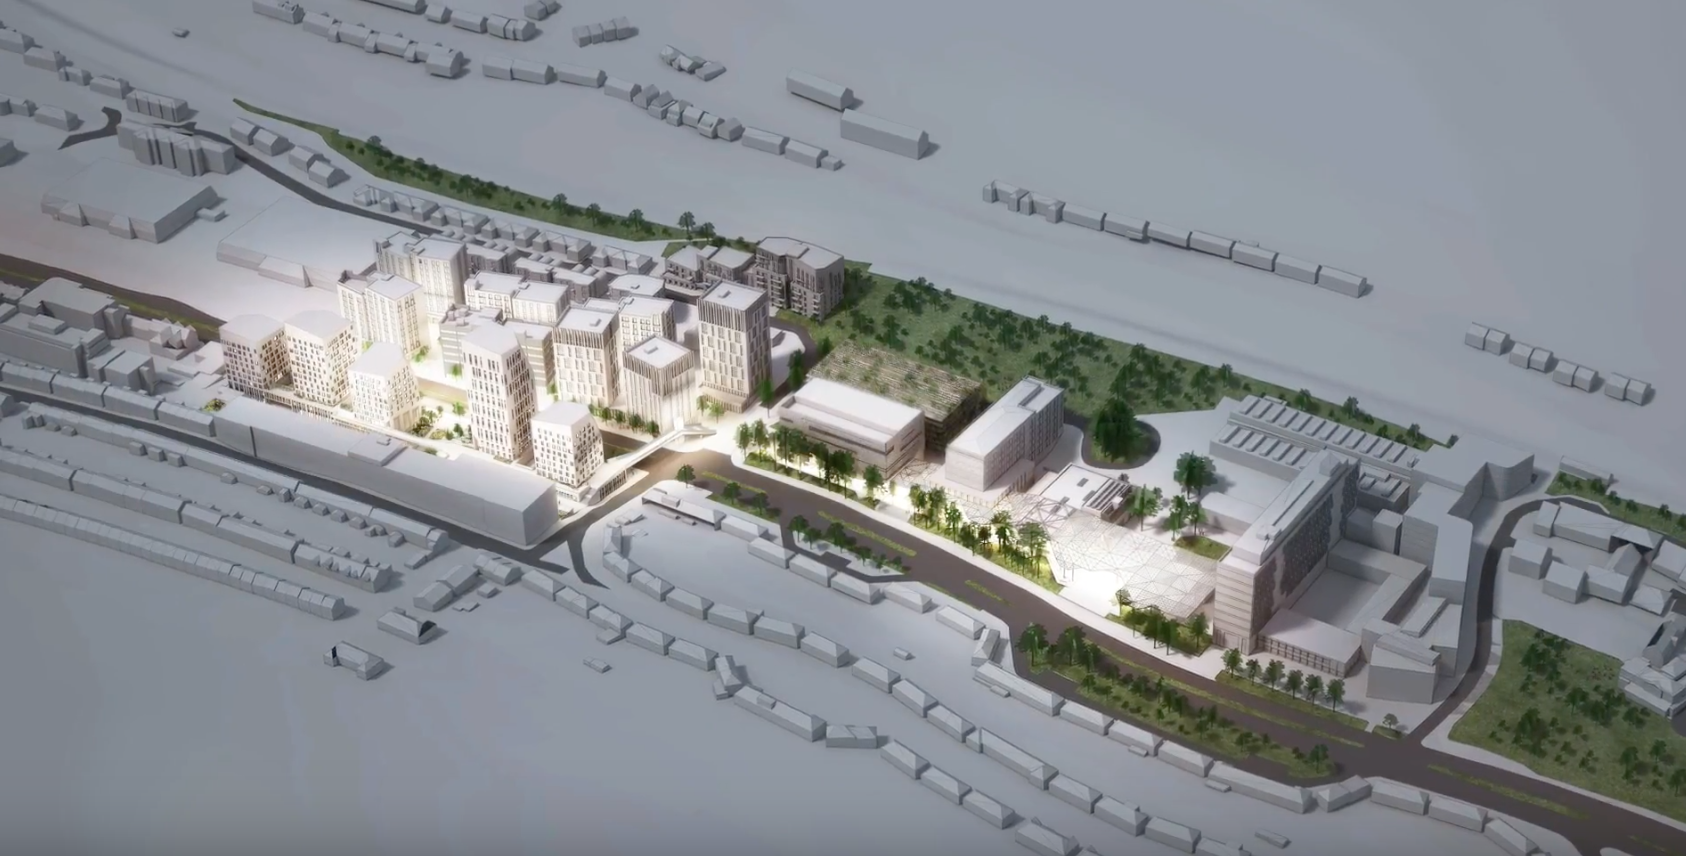 Proposed University of Brighton Campus